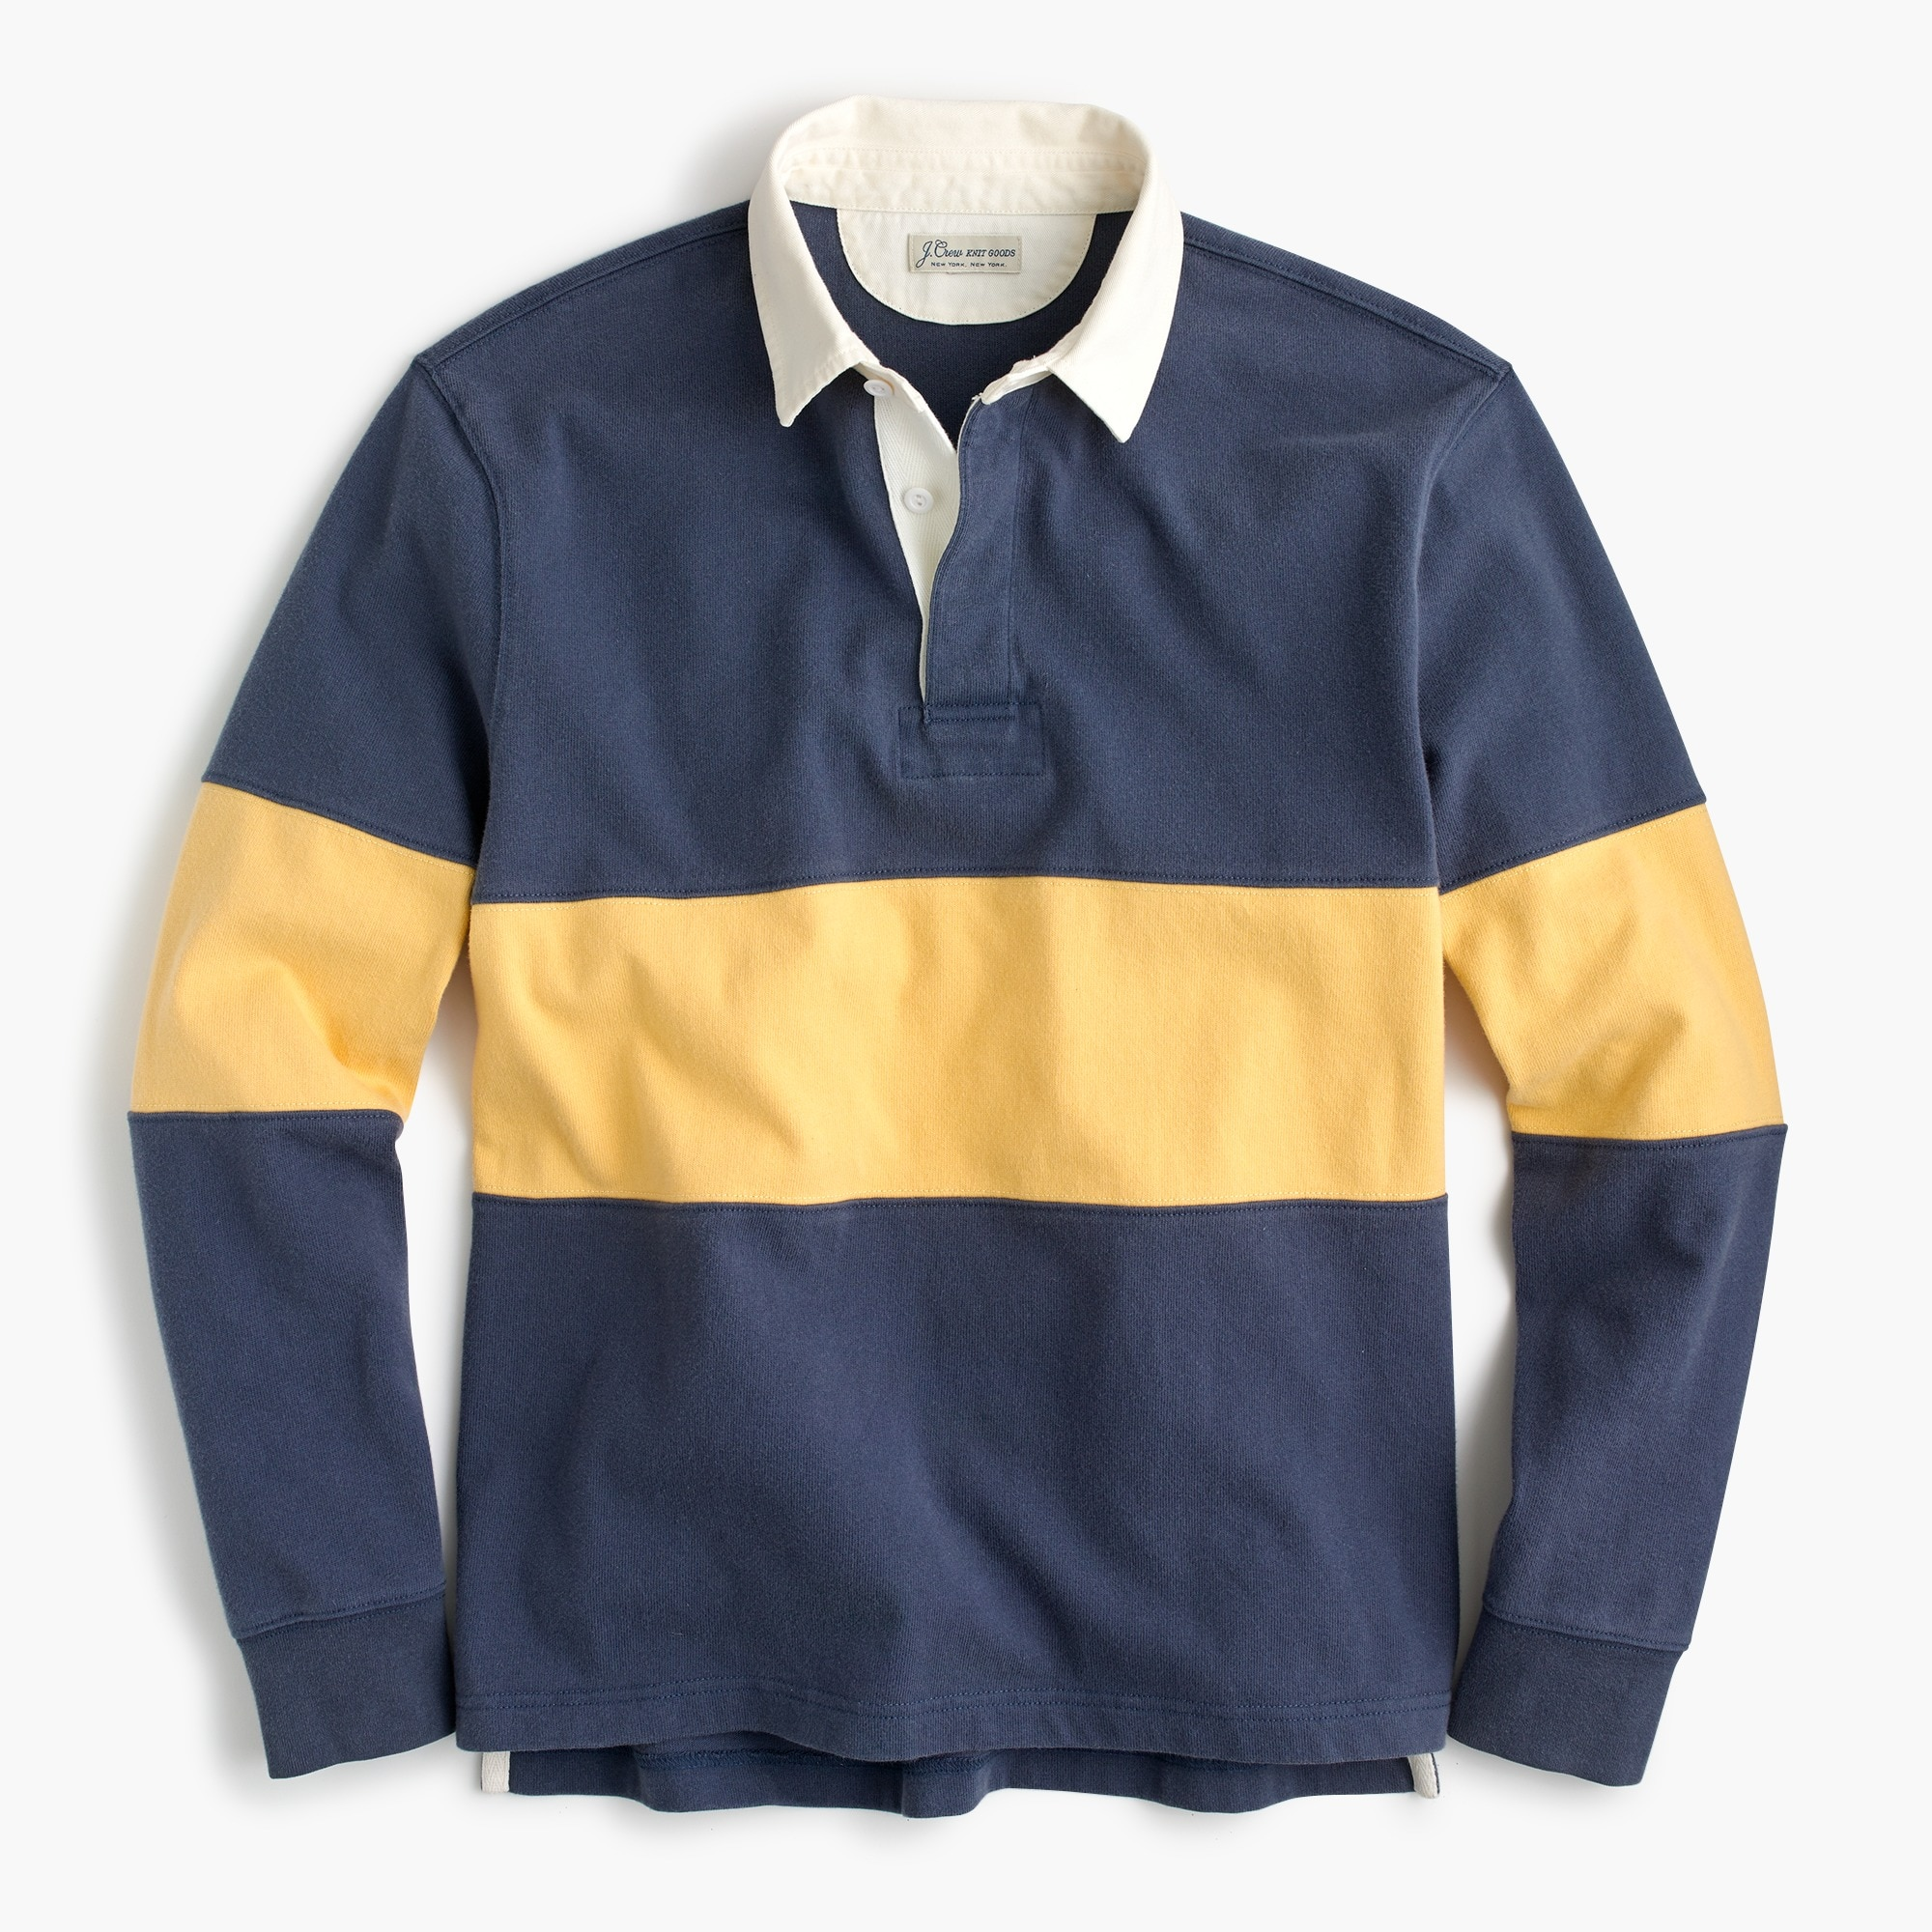 Unisex 1984 rugby shirt in single stripe